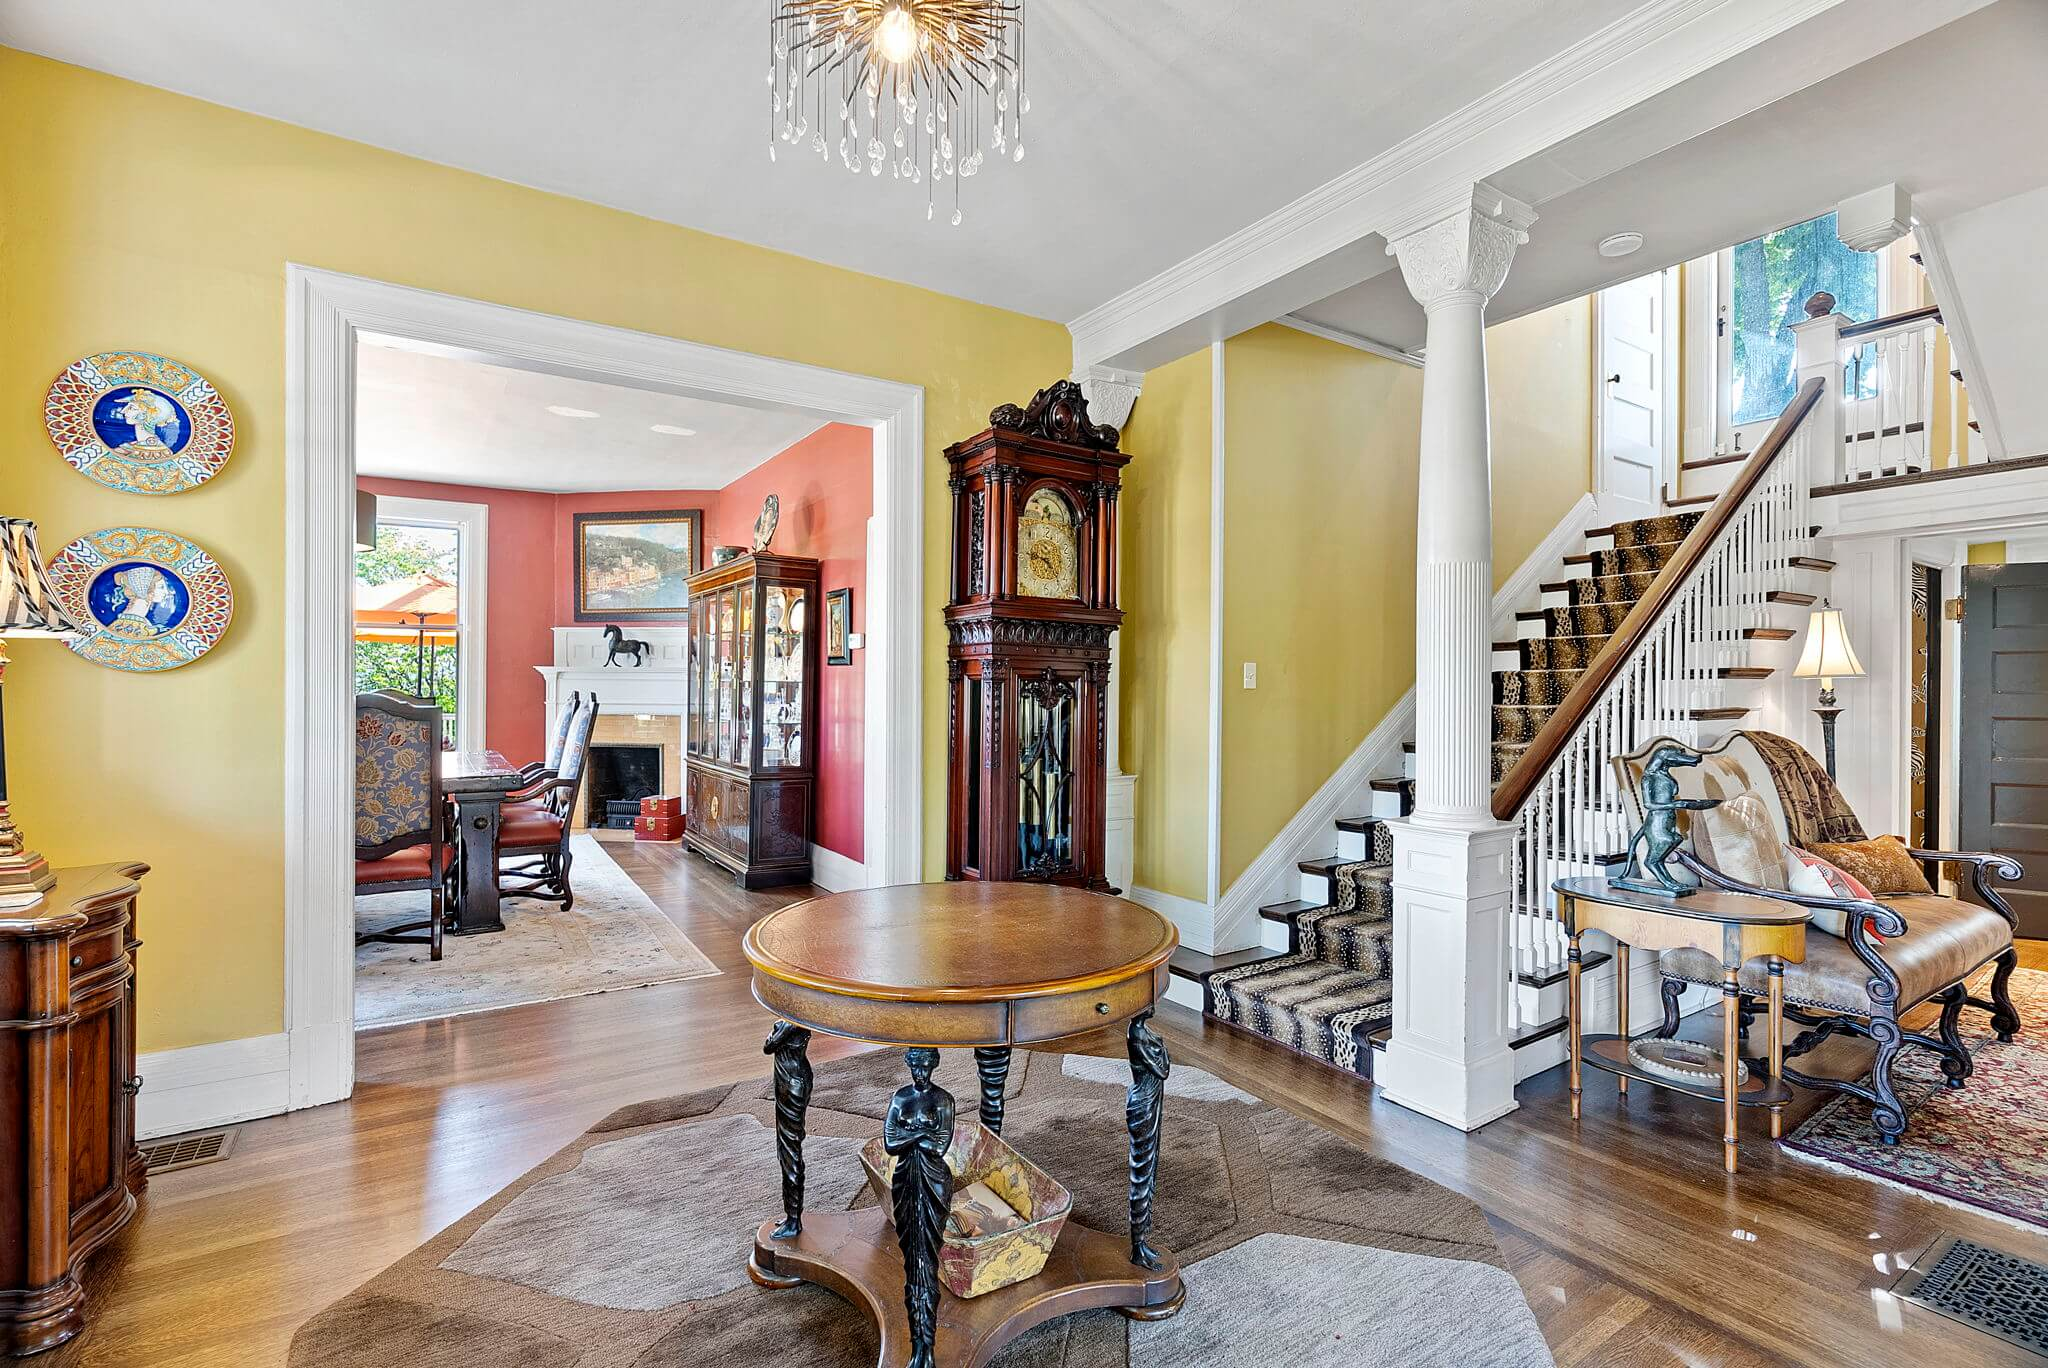 Formal entry with view towards dining room